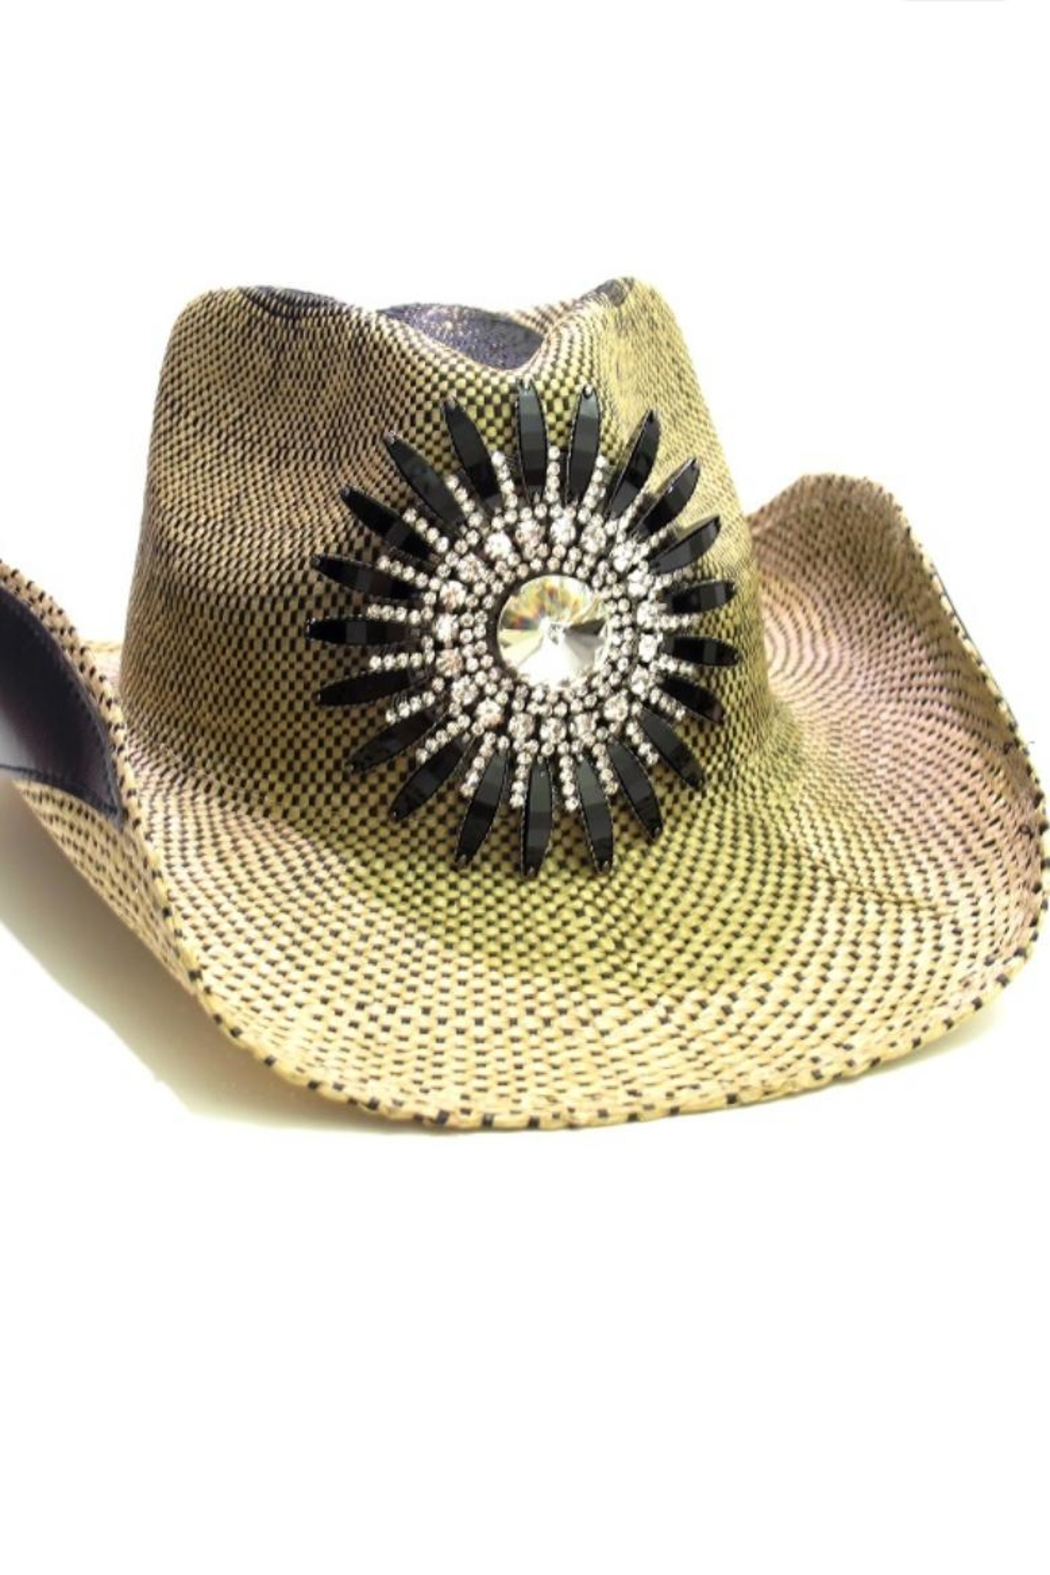 Olive pique crystal flower cowgirl hat from north carolina jpg 1050x1575  Olive and pique hats 62924fe93d37